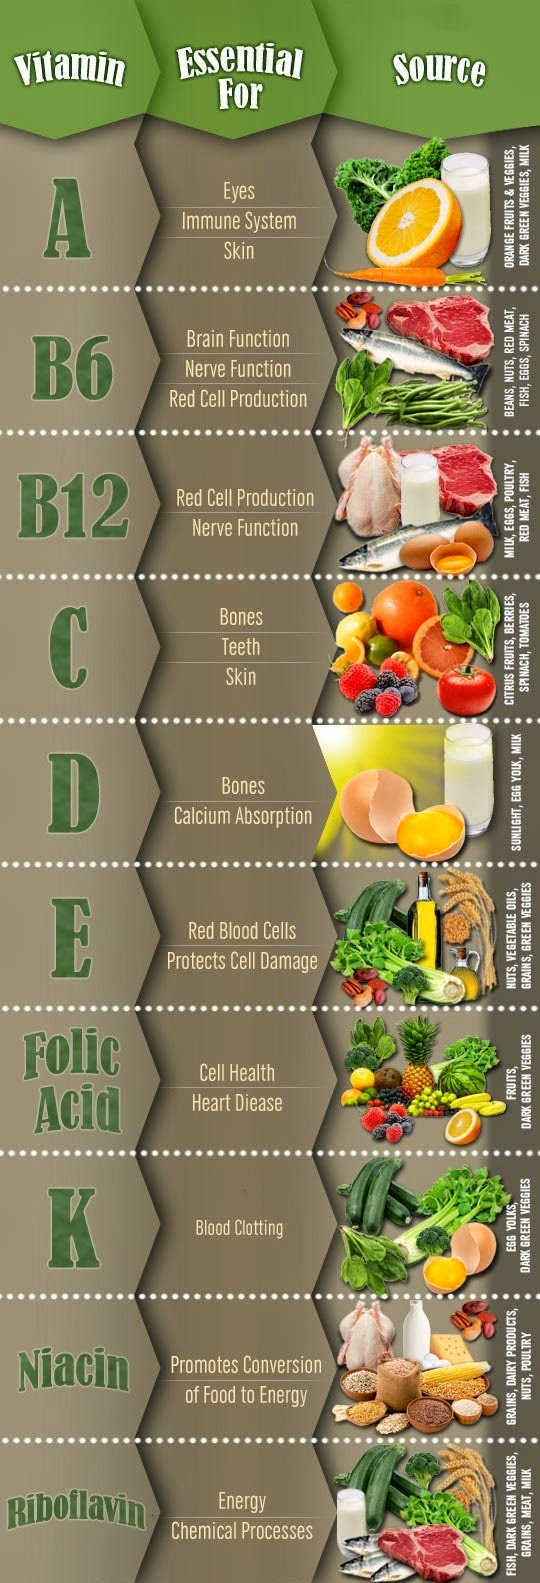 Sources of Vitamins